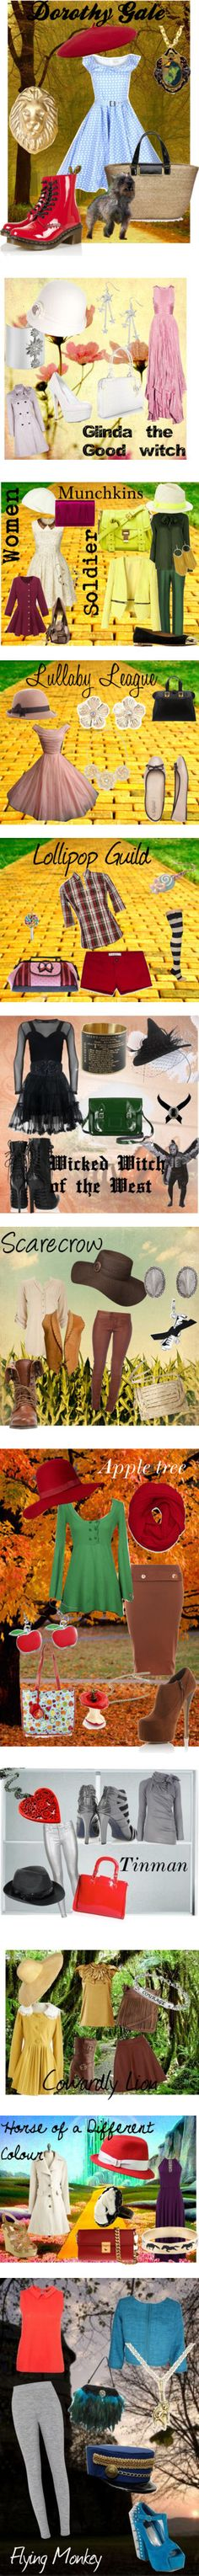 270 best Costumes images on Pinterest Costume ideas, Fantasy party - halloween group costume ideas for work